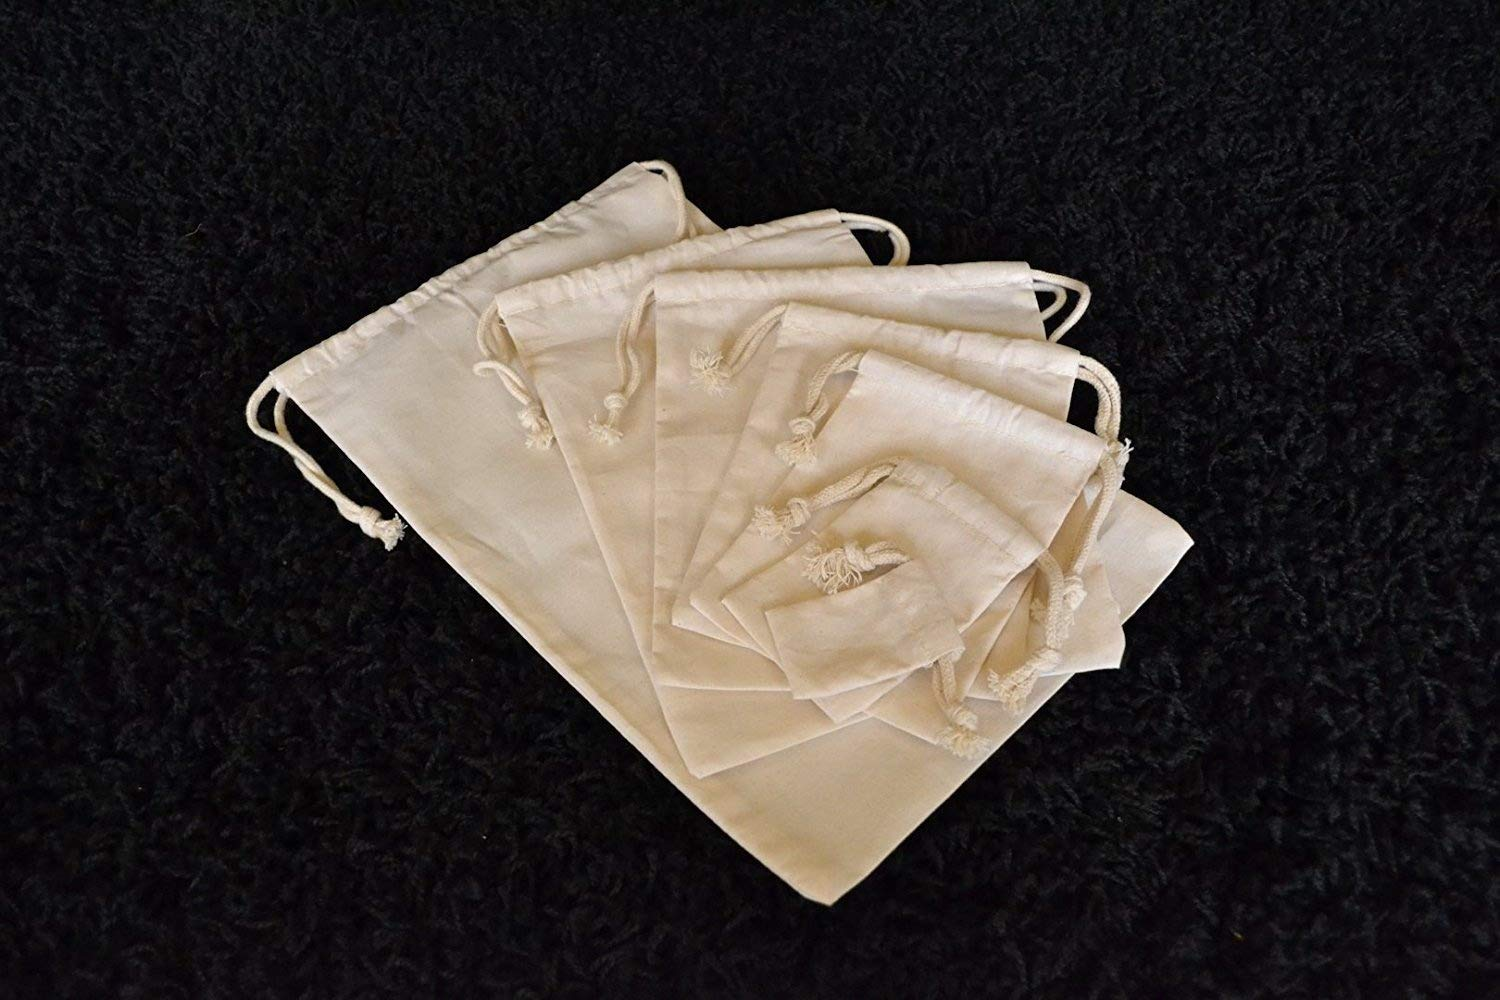 6c6fea45b92 Amazon.com: 6x8 Cotton Double Drawstring Muslin Bags, 100% Organic Cotton  Muslin Drawstring and Premium Quality Bags, Eco-friendly (Natural Color)  (10): ...